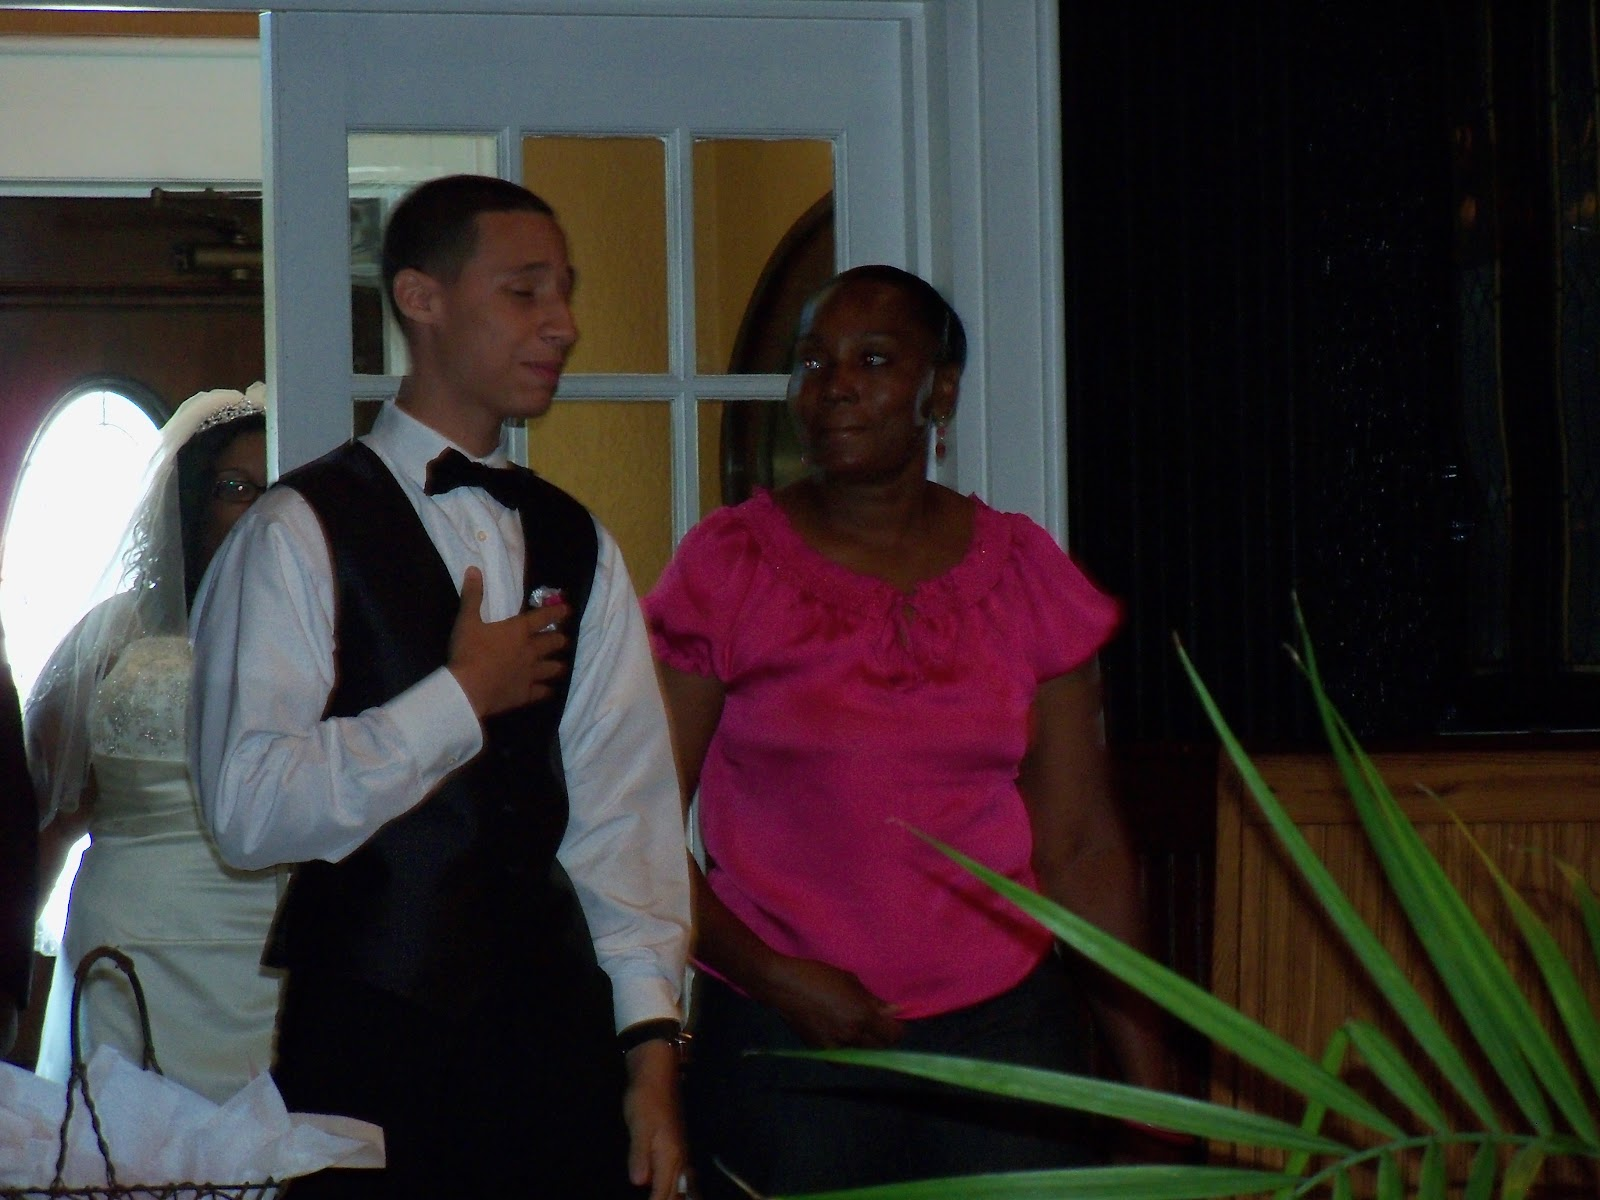 MeChaia Lunn and Clyde Longs wedding - 101_4555.JPG